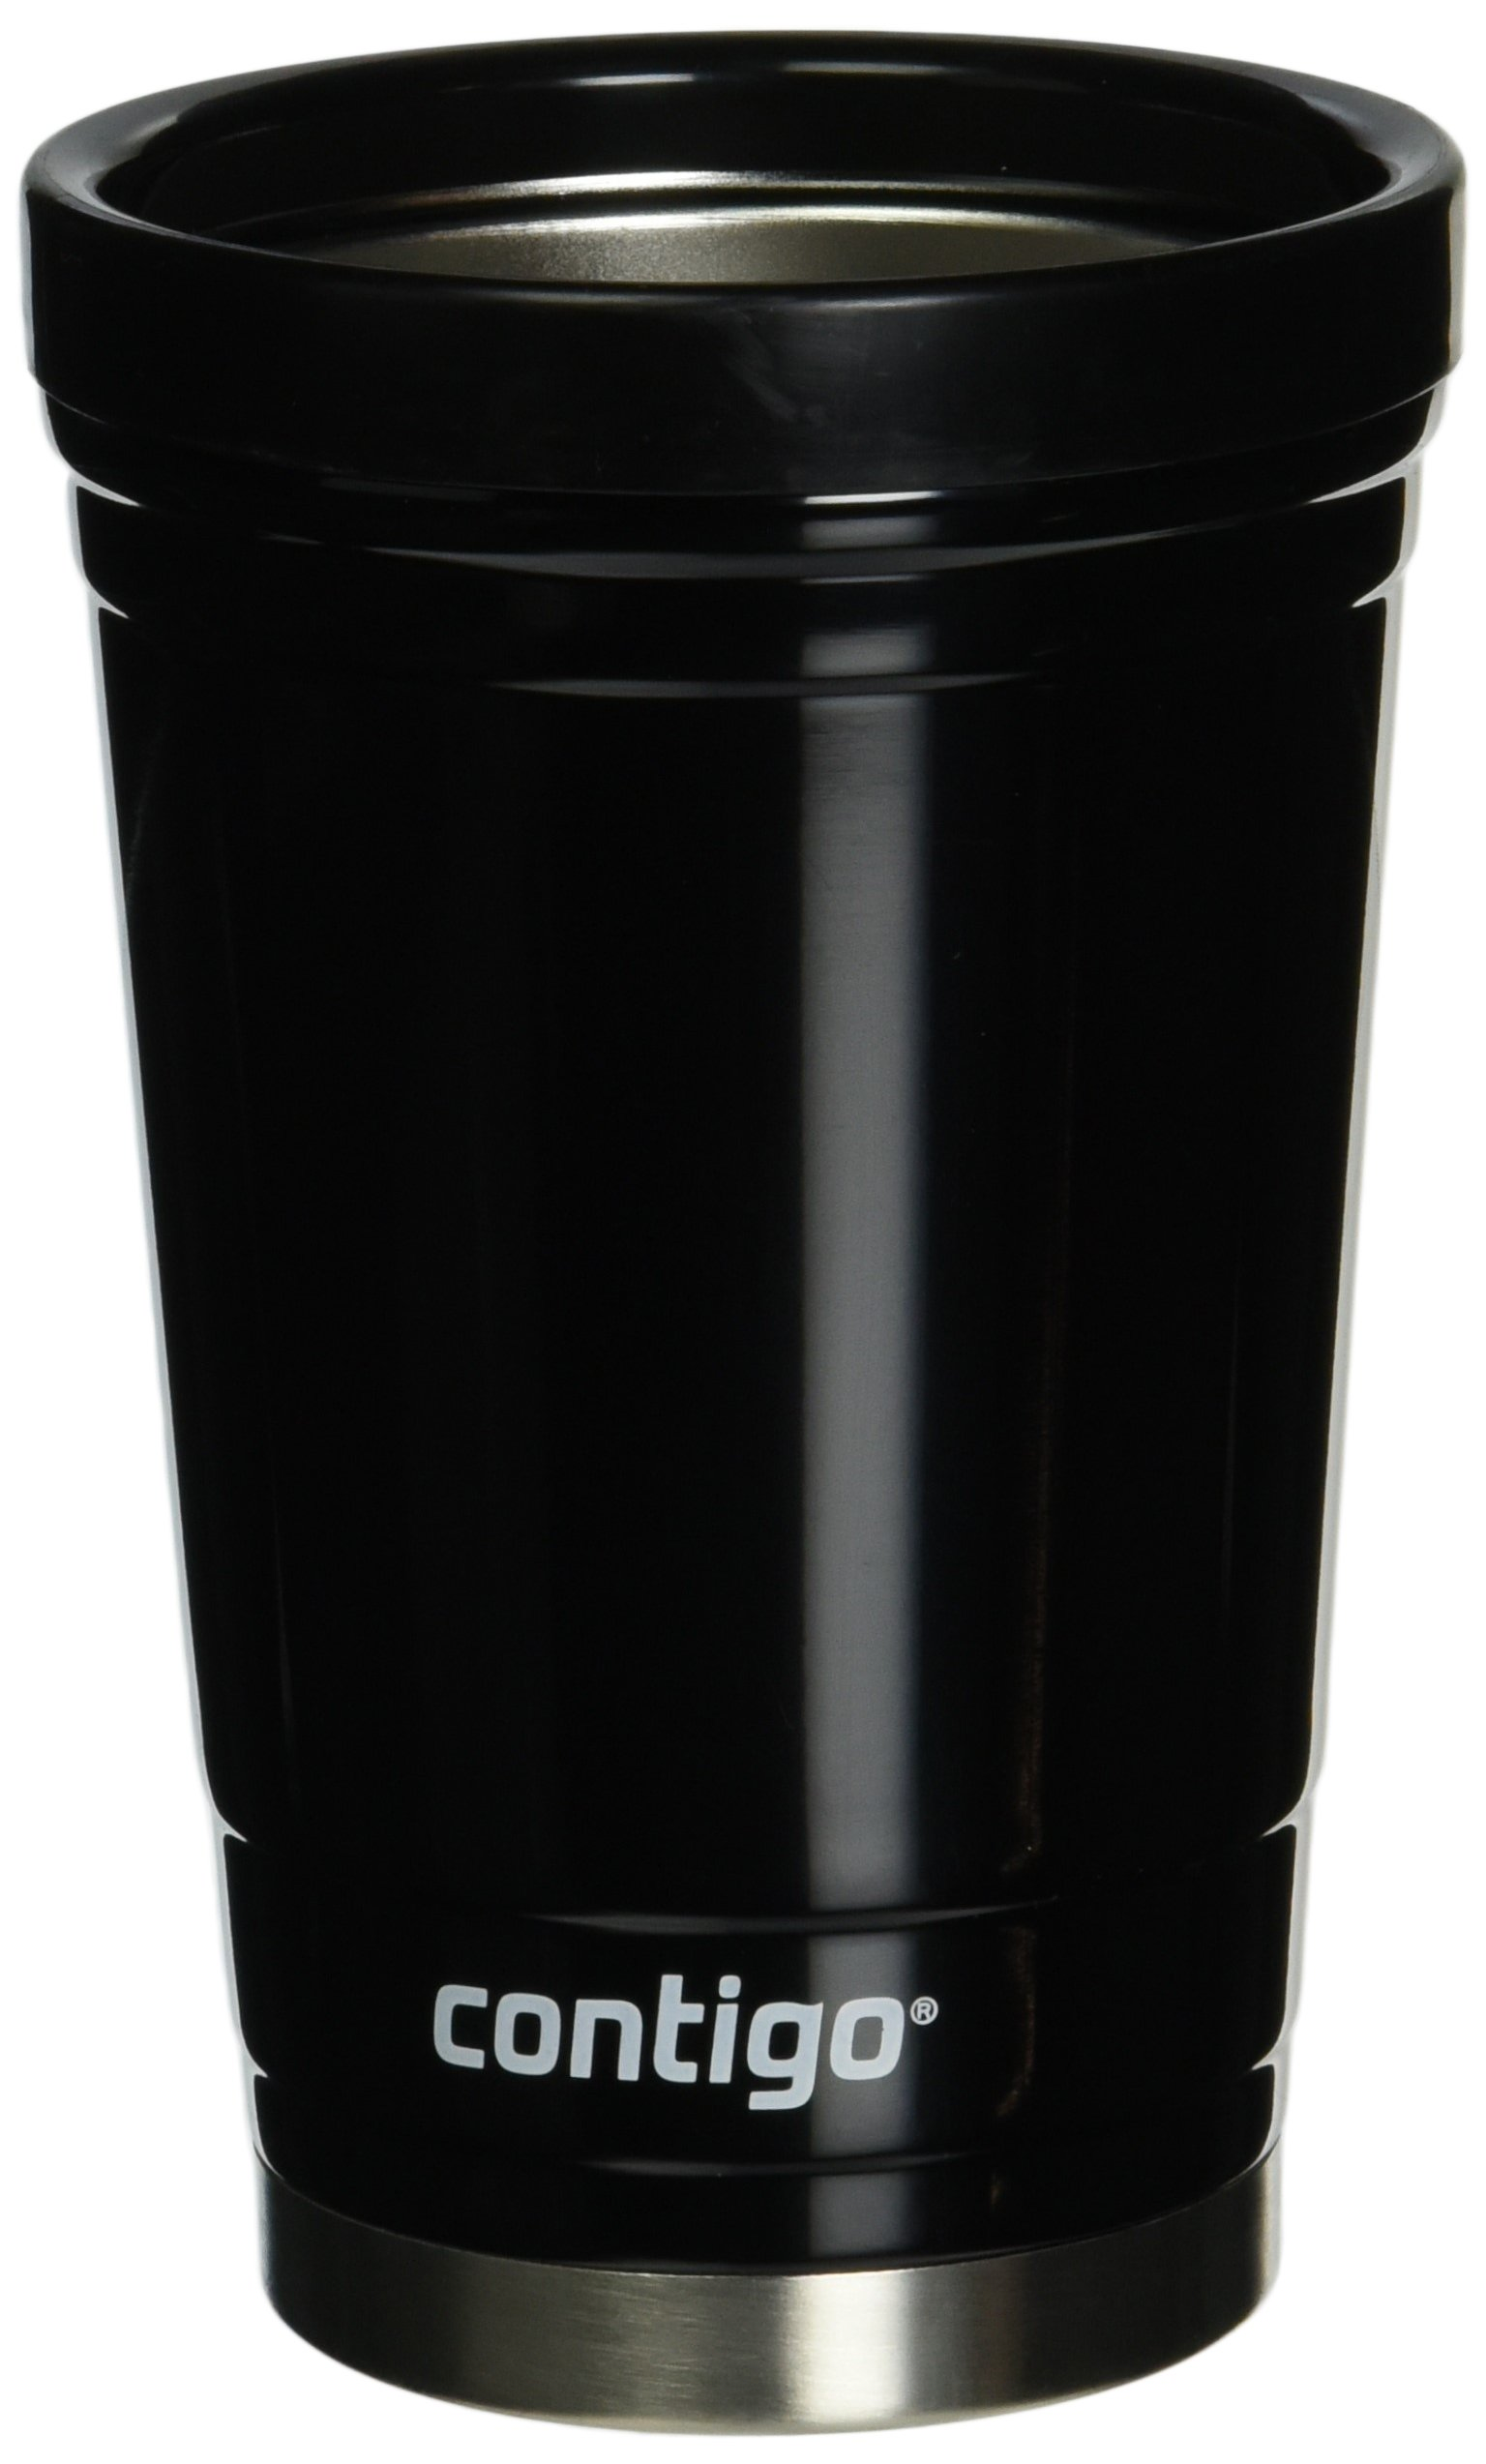 Contigo Party Cup, 16-Ounce, Stainless Steel, Doble Wall vaccum-Insulated, Black by Contigo